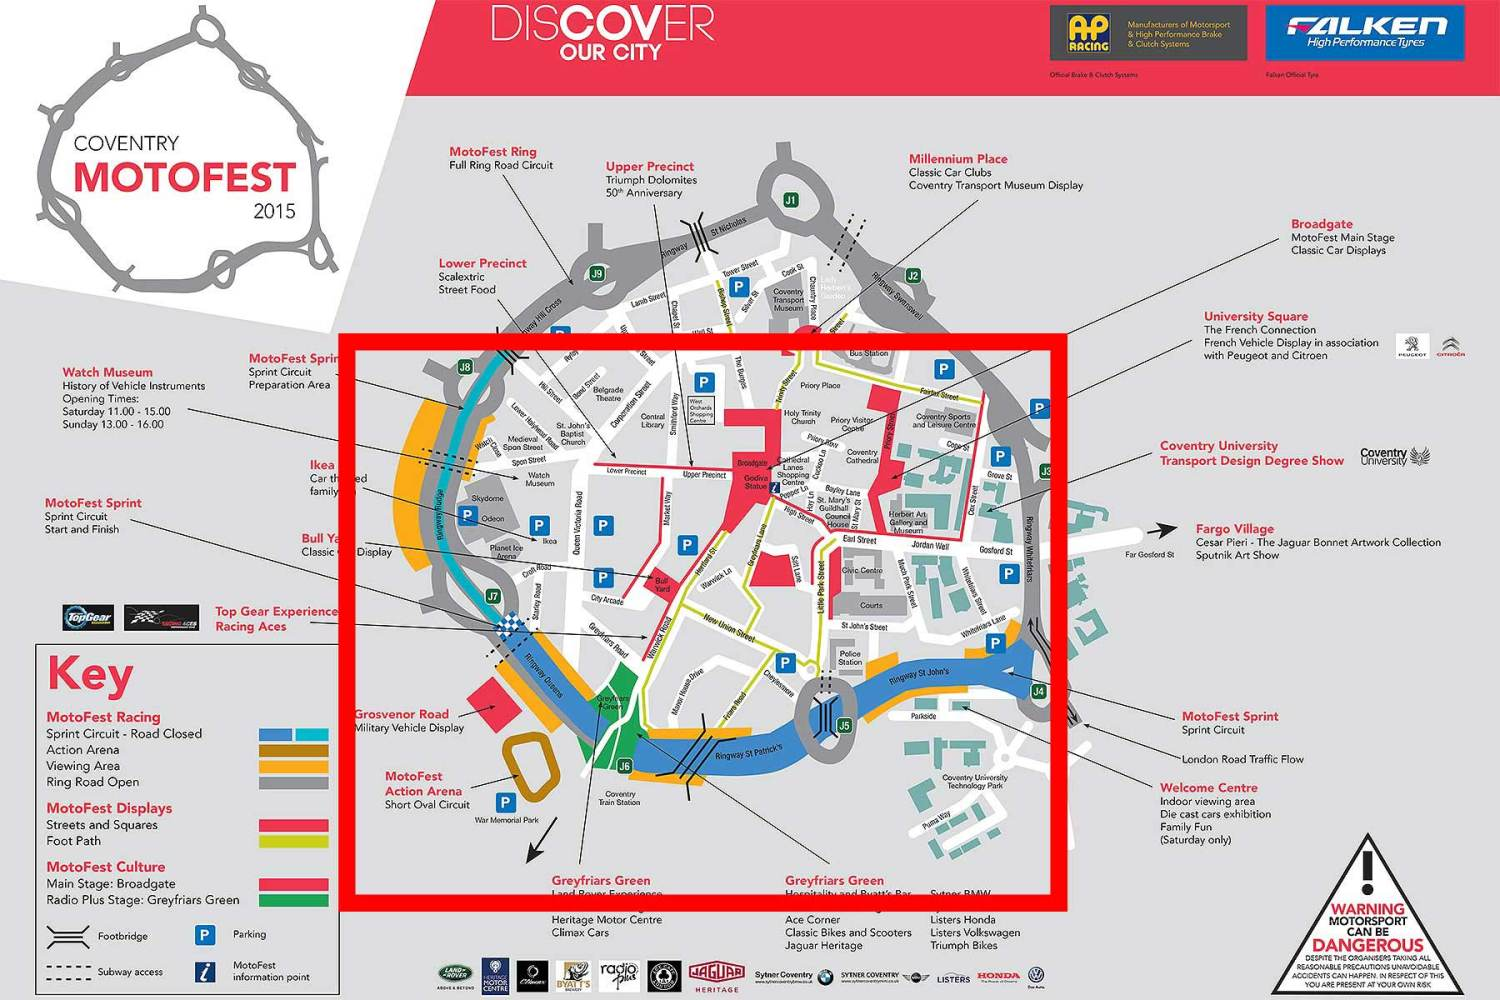 Coventry MotoFest 2015 road closures